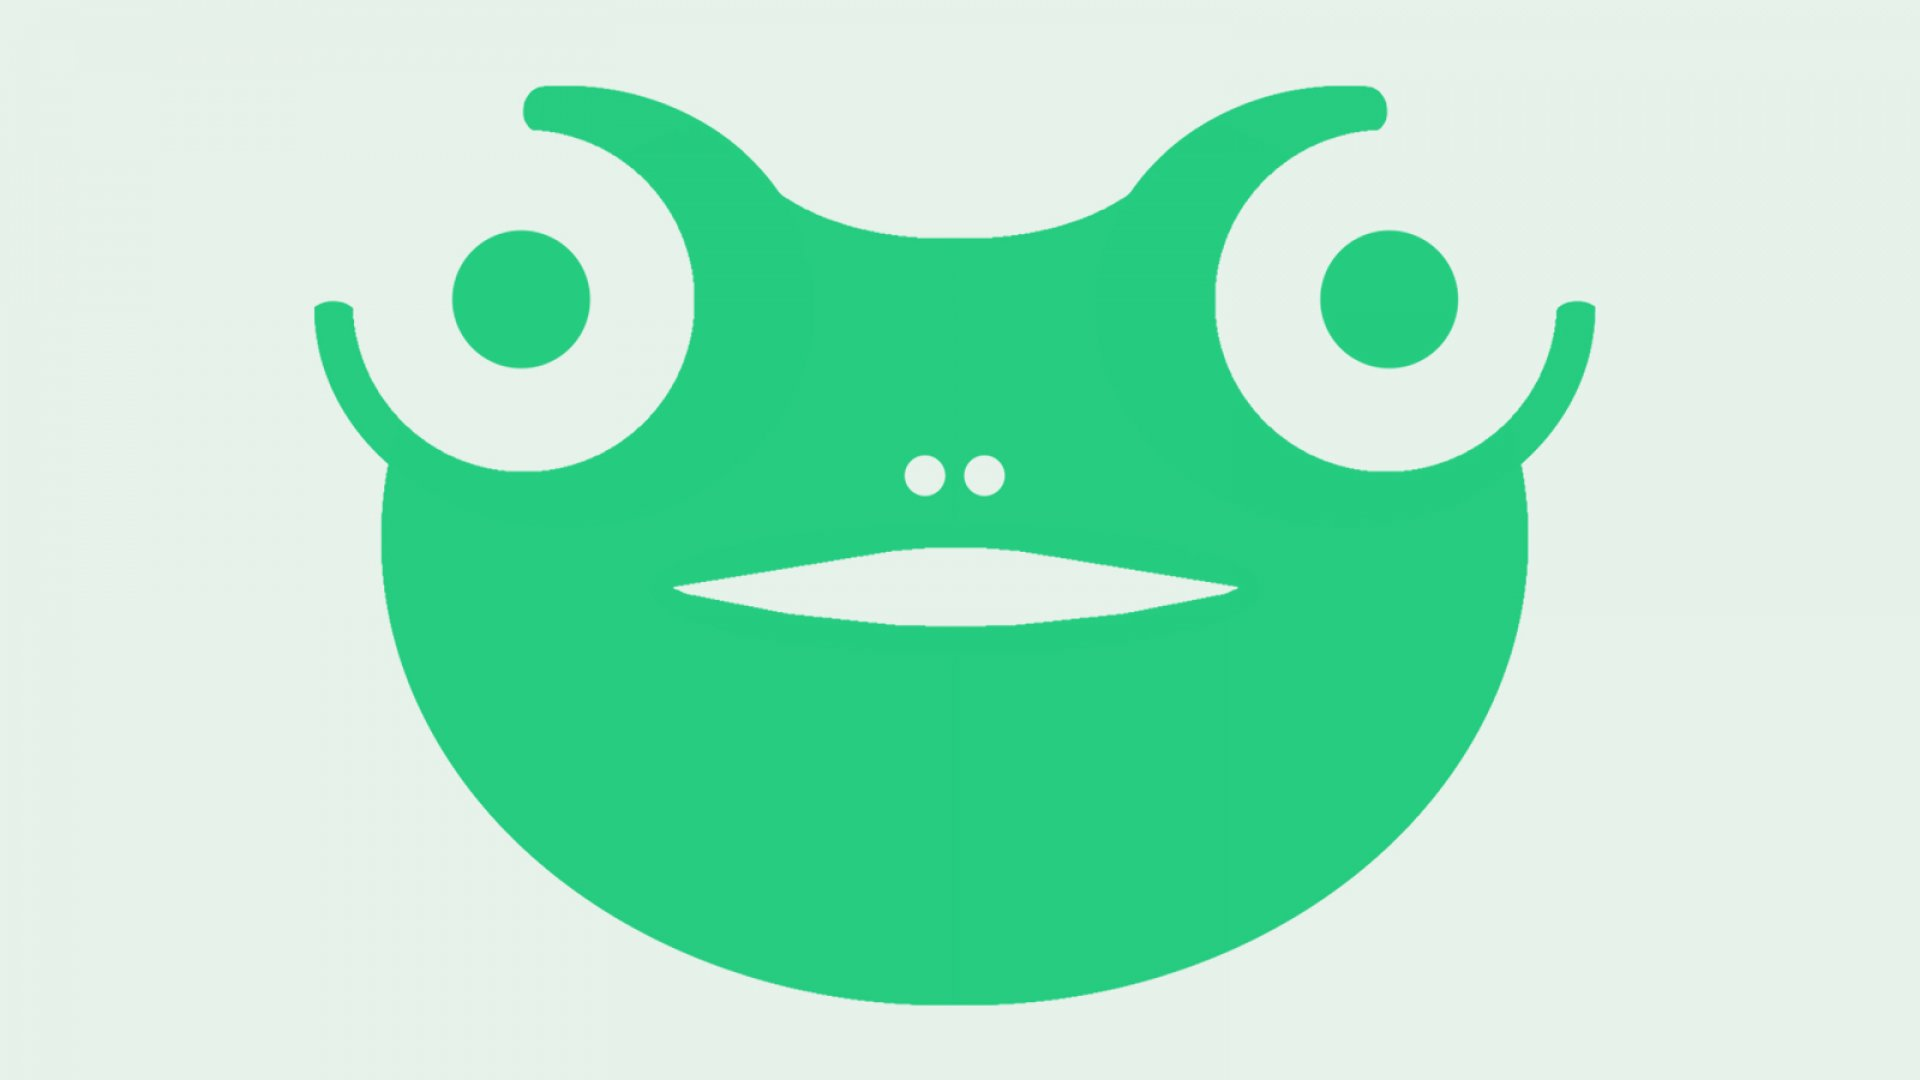 Gab, a free speech social network that has risen in popularity among white nationalists and white supremacists, was denied access to the services of both Twitter and Apple this week.